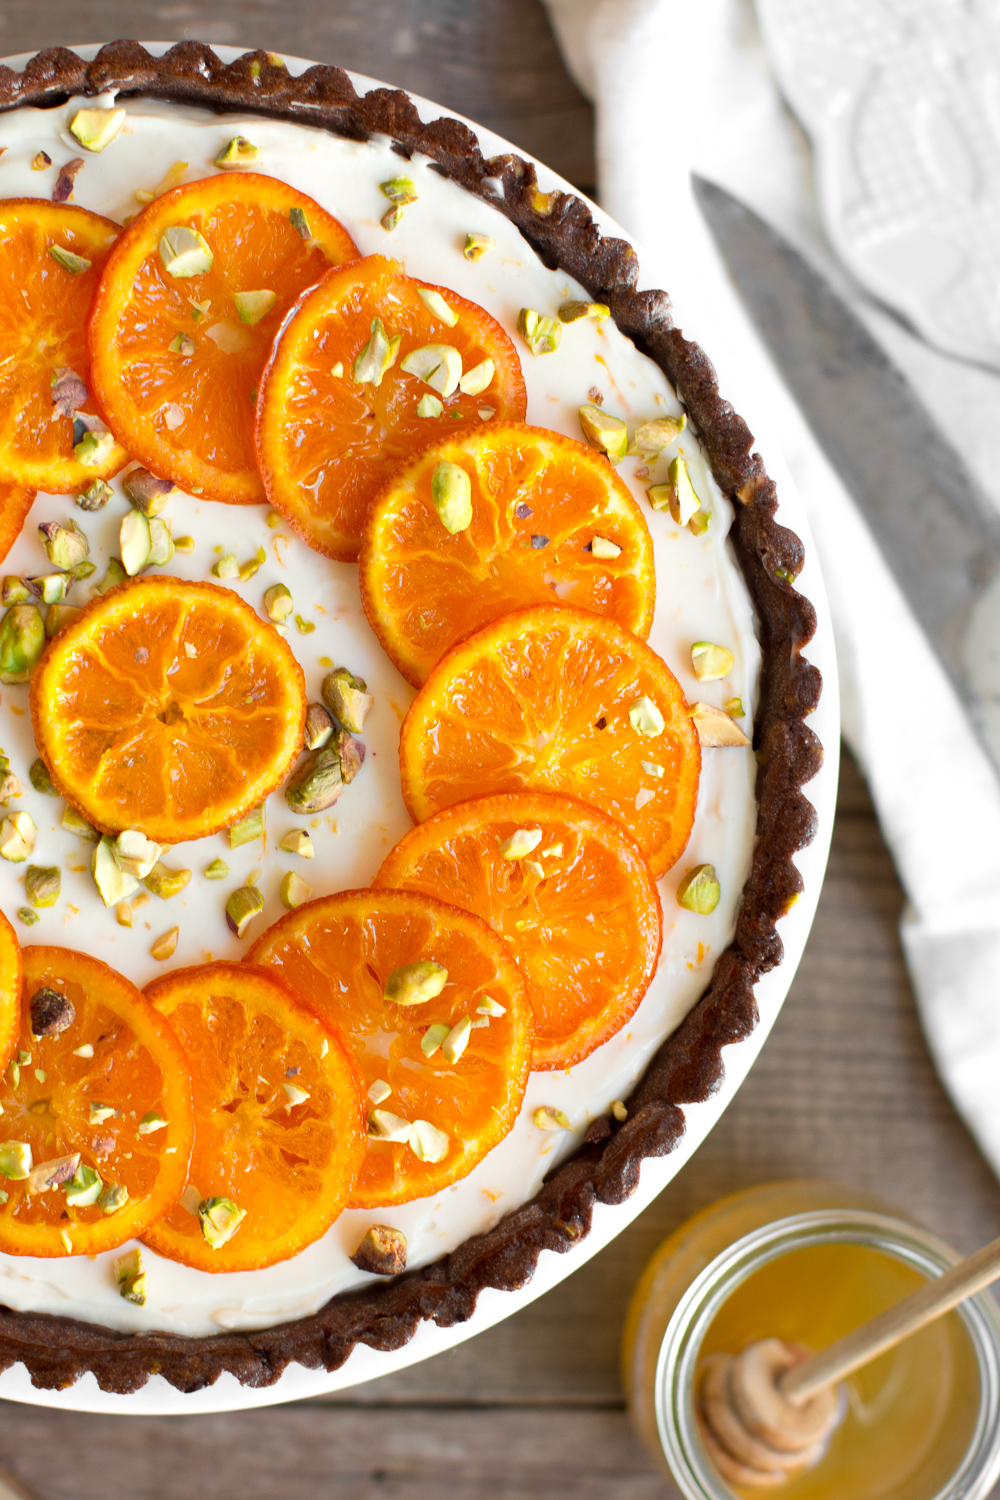 Candied Tangerine Mascarpone Tart with Pistachio Chocolate Crust